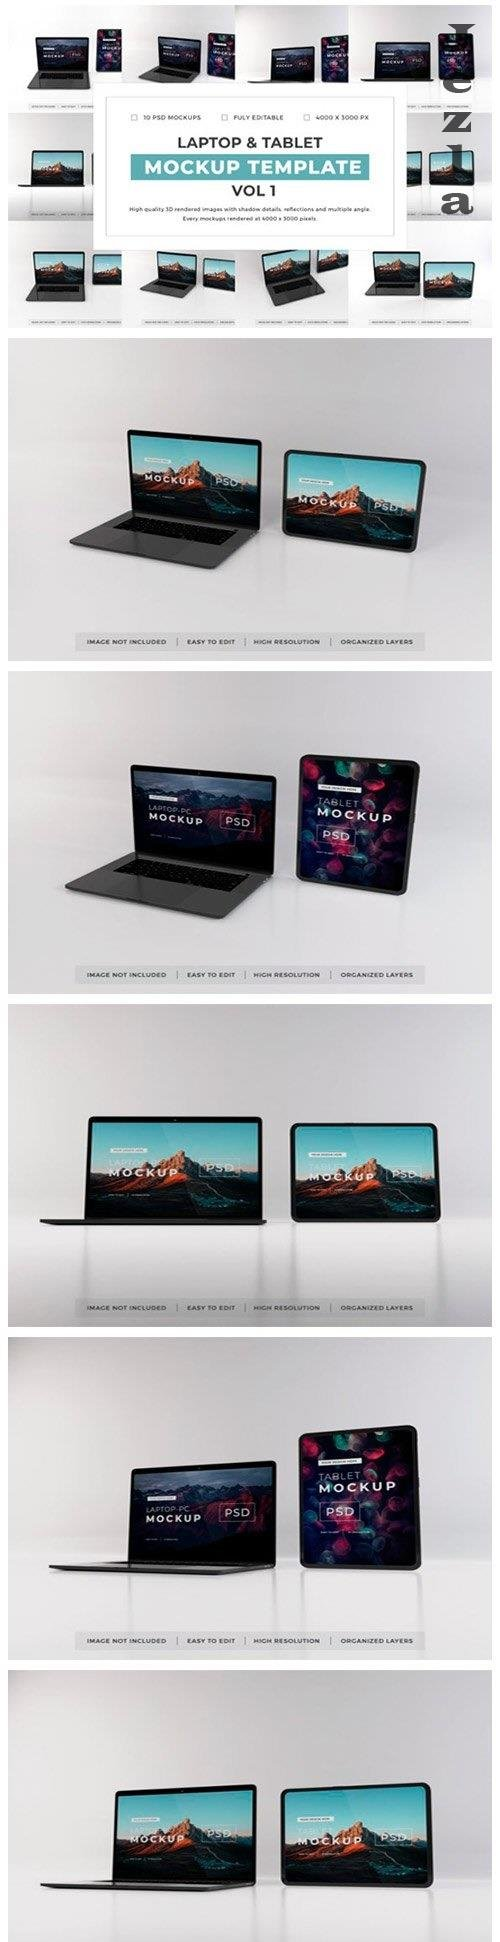 Laptop and Tablet Mockup Template Bundle Vol 1 - 1053021